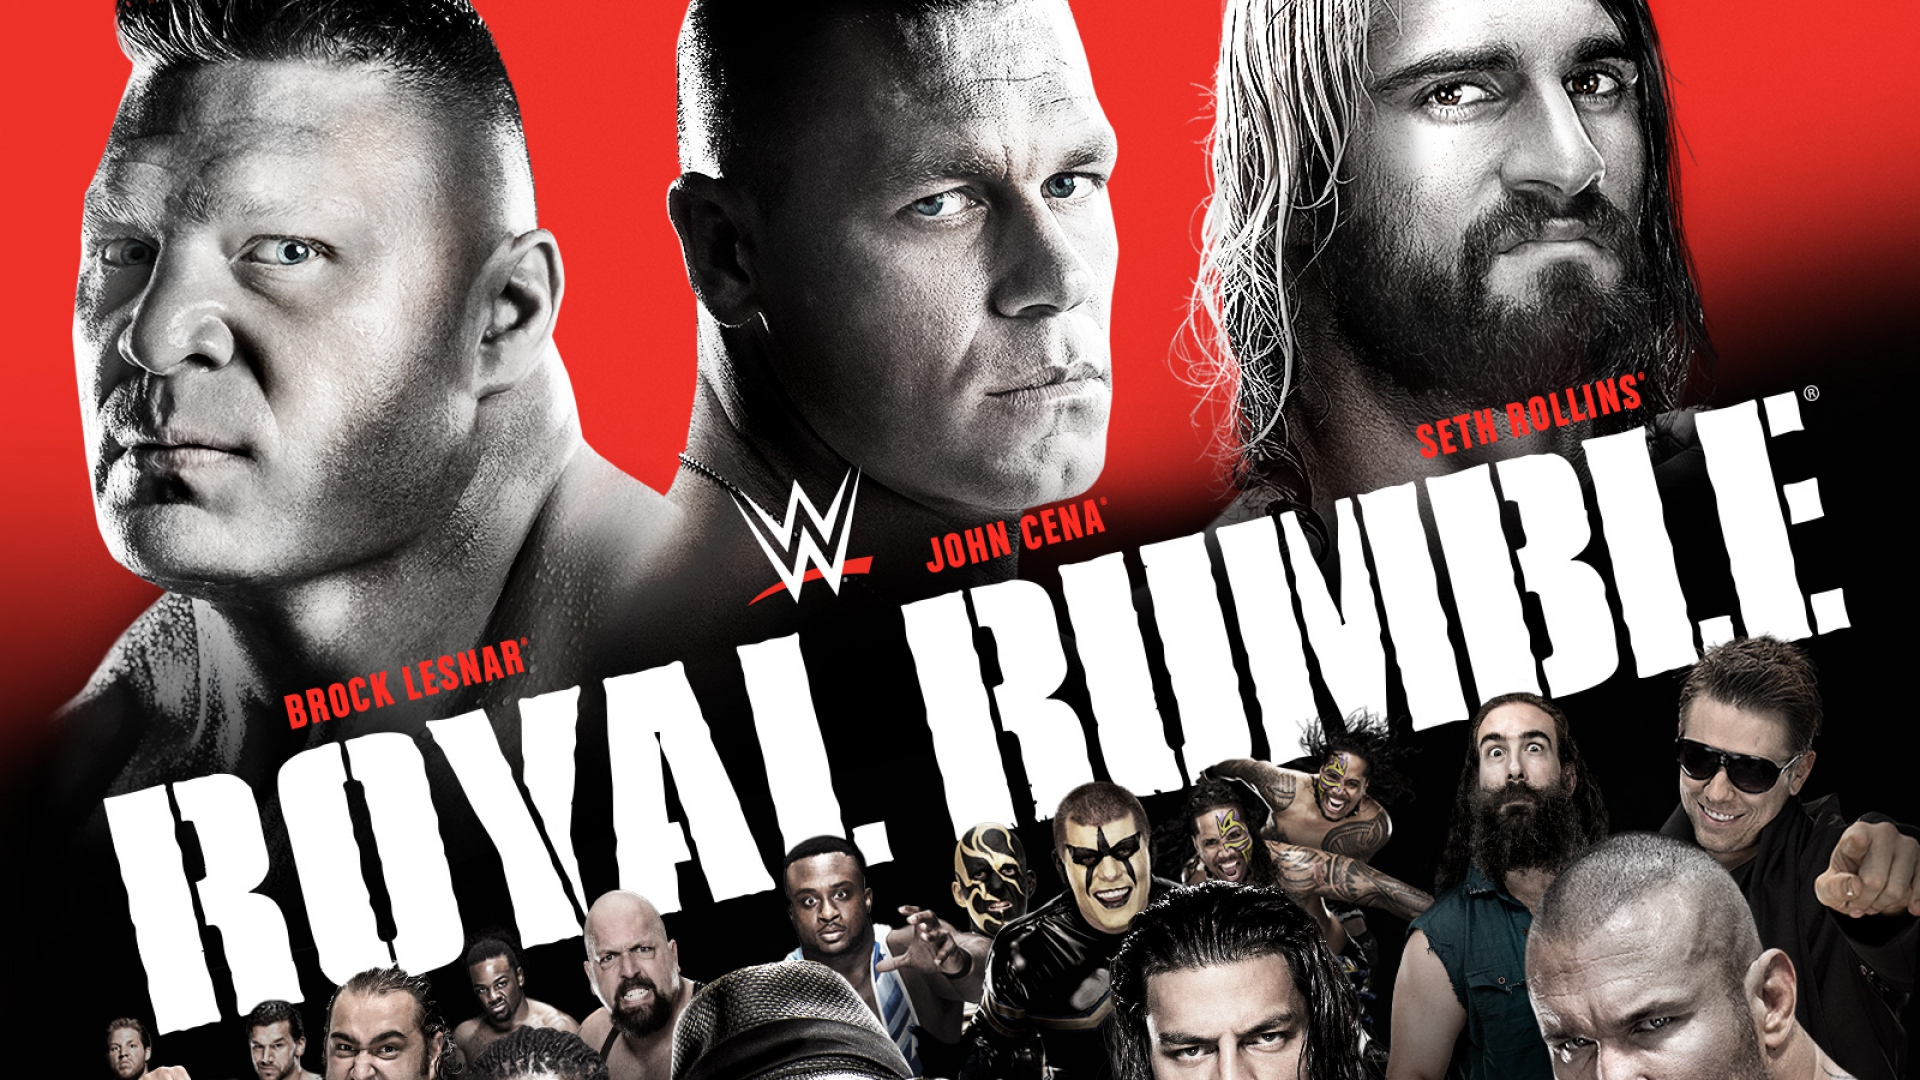 Download Wallpaper 1920x1080 Wwe Elimination chamber 1920x1080